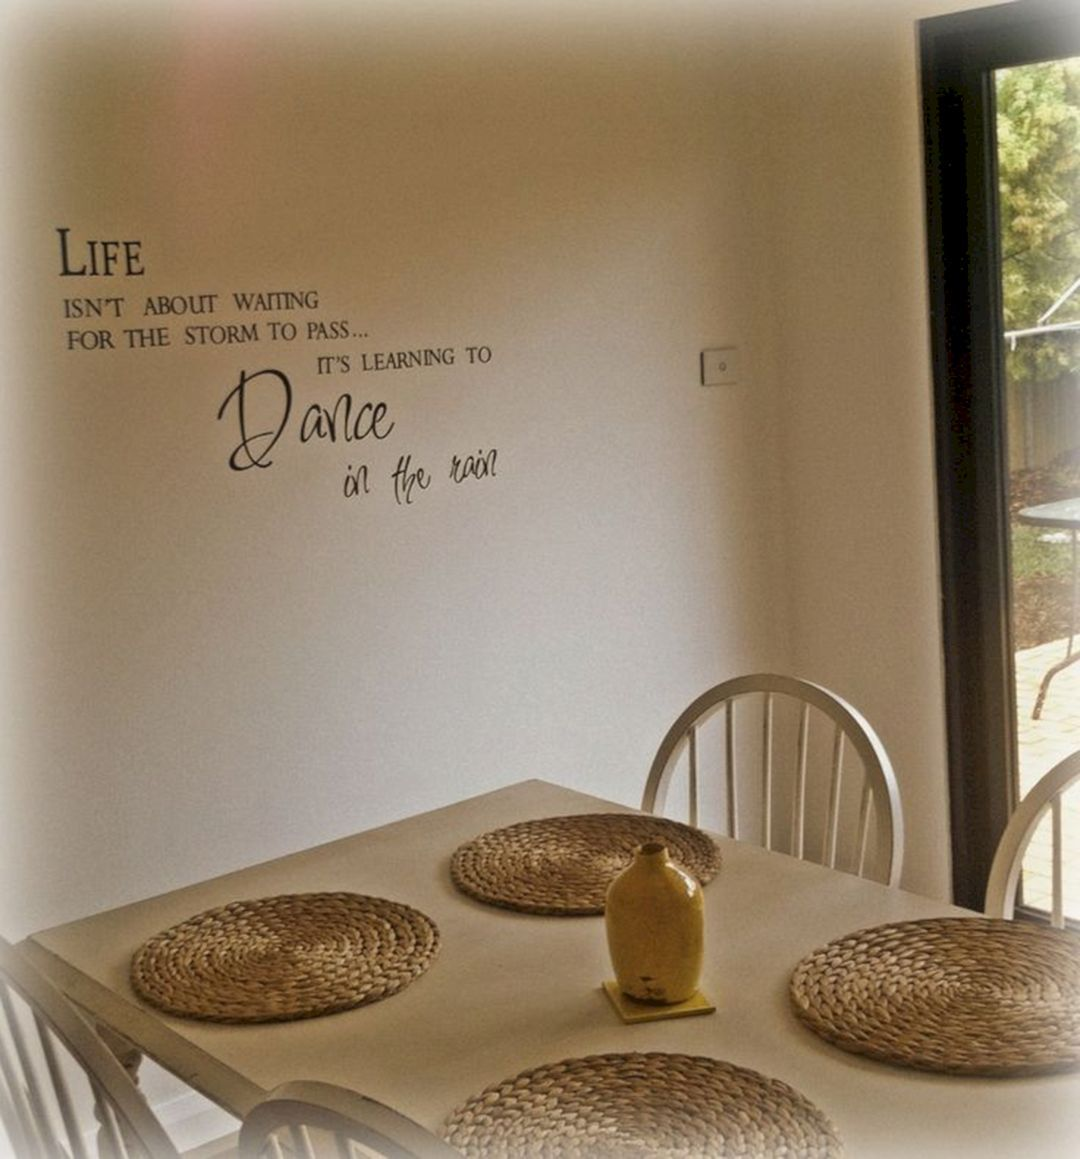 Outstanding Top 10 Dining Room Wall Quotes Ideas Https Montenr Com Top 25 Dining Room Wall Quotes Ide Dining Room Quotes Dining Room Walls Dining Room Design